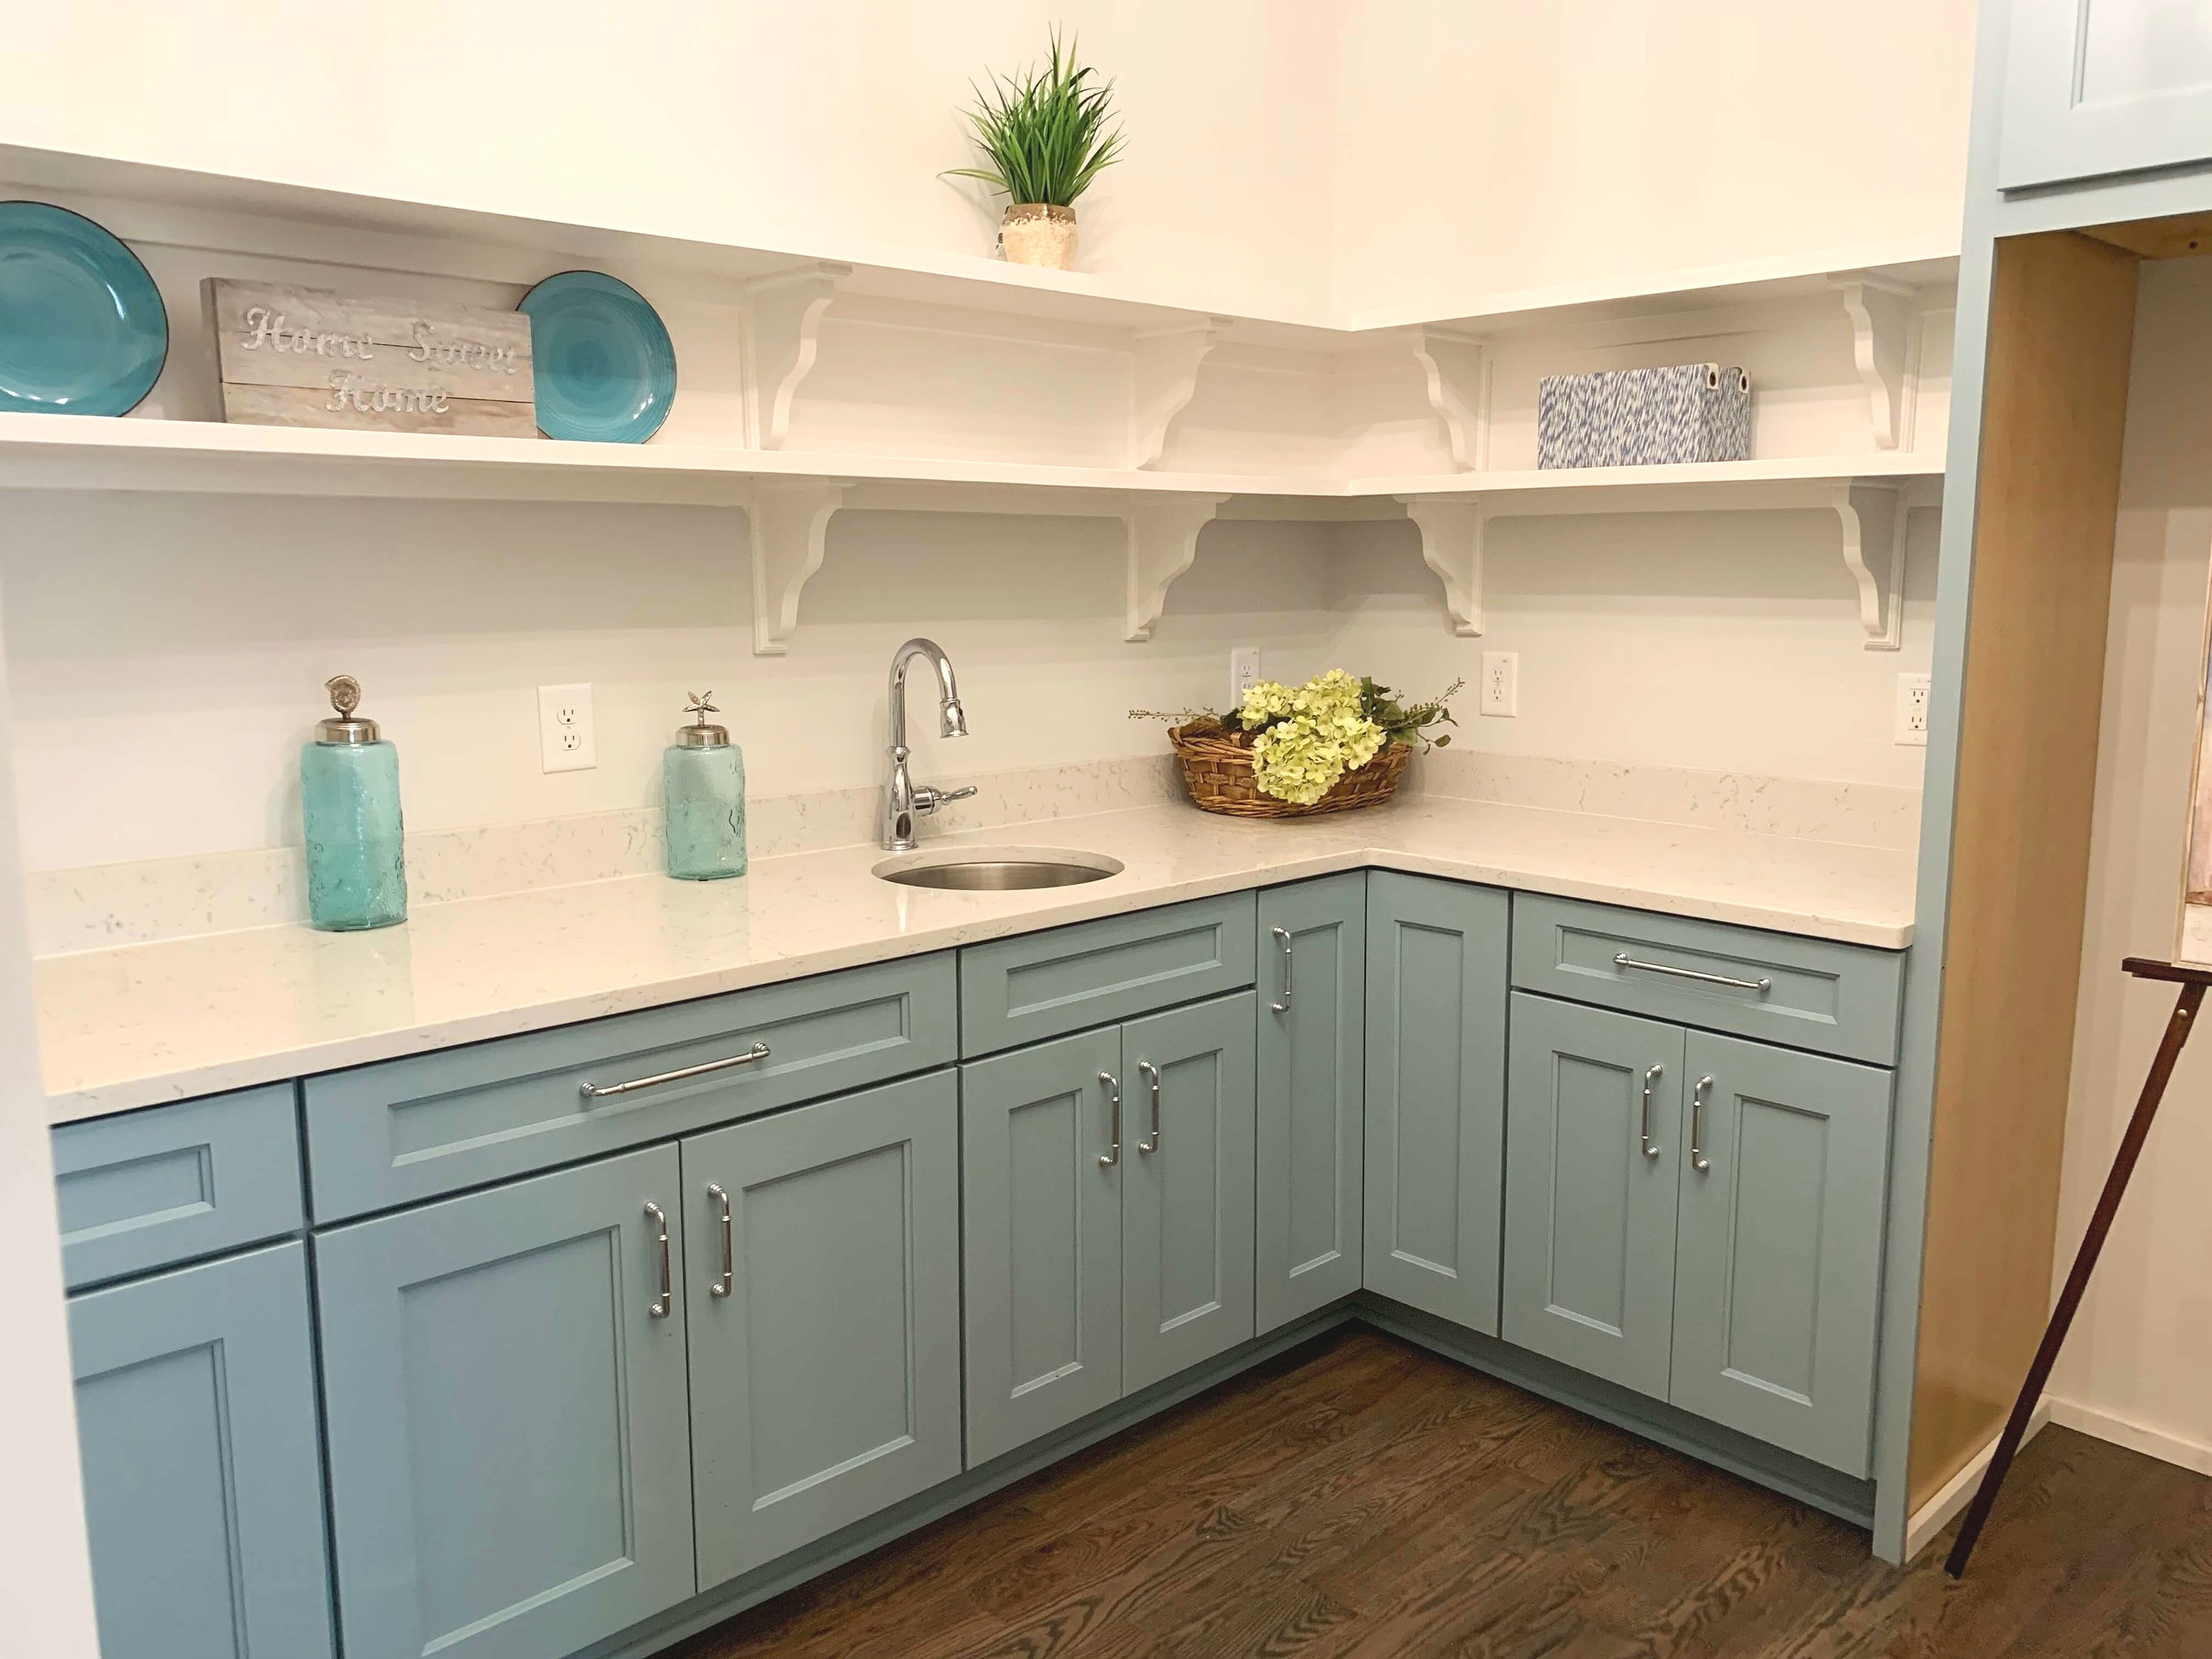 Kitchen butler's pantry with blue cabinets, open shelving, quartz counters and bar sink.